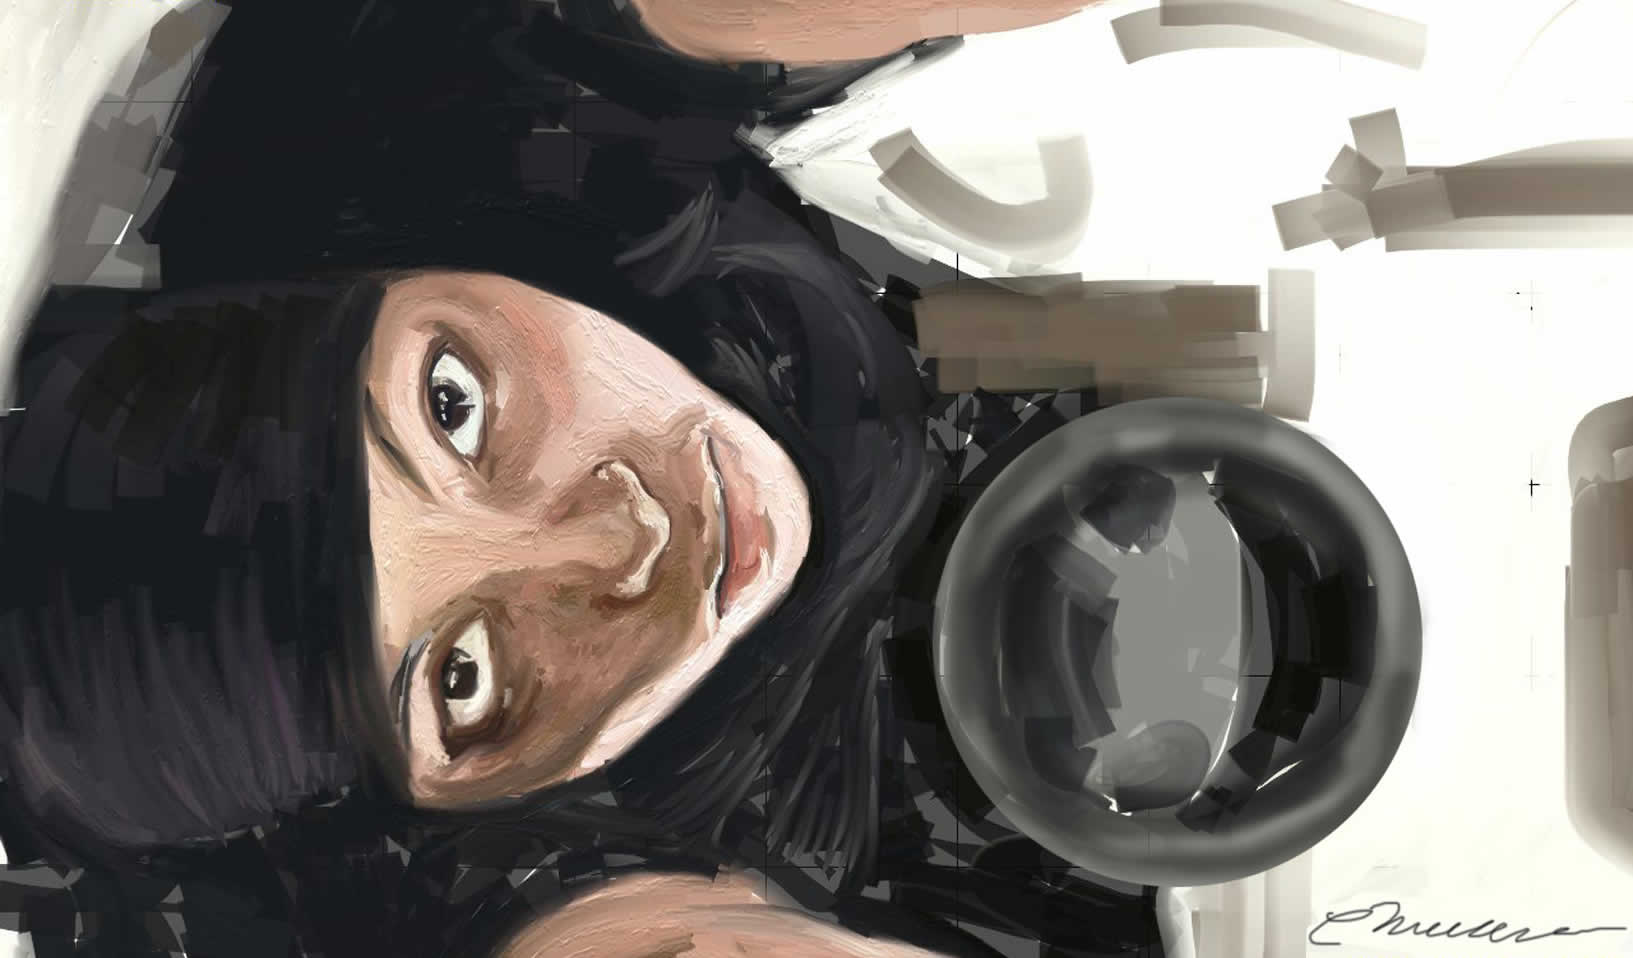 Ummi Painted with ArtRage by Clarence McMillan